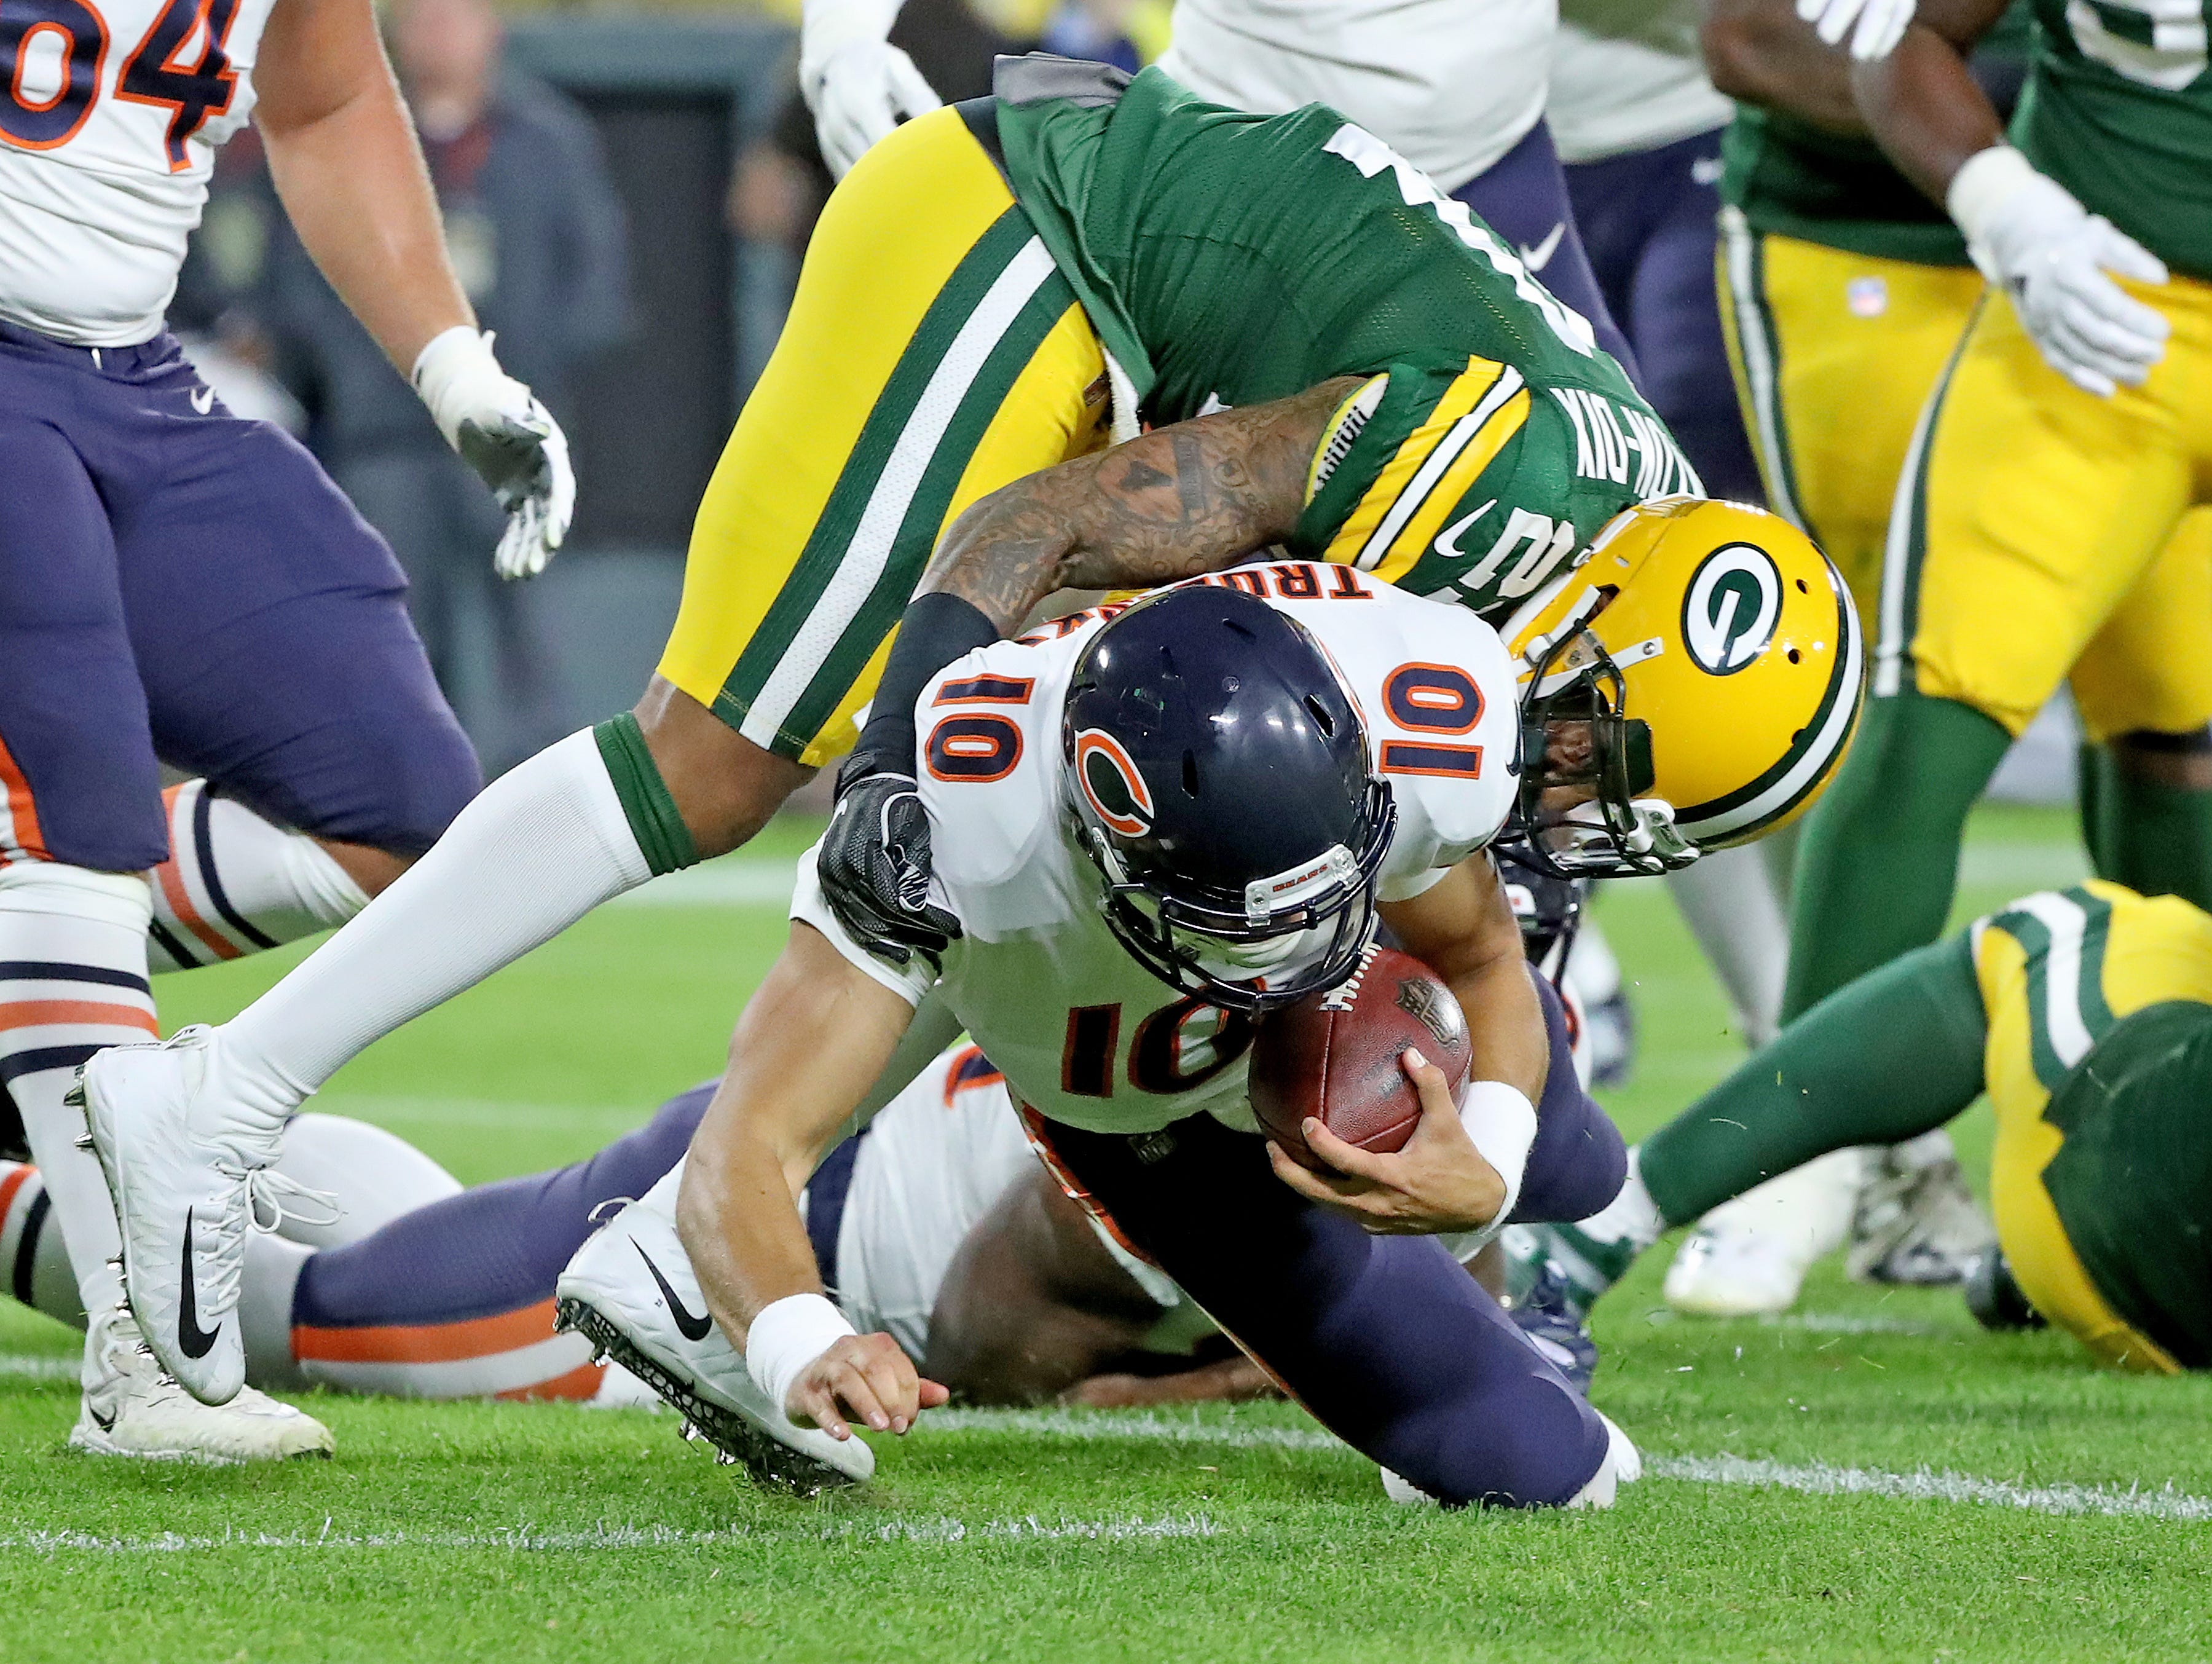 Green Bay Packers defensive back Ha Ha Clinton-Dix (21) can't stop quarterback Mitchell Trubisky (10) from scoring a touchdpwn in the first quarter against the Chicago Bears Sunday, September 9, 2018 at Lambeau Field in Green Bay, Wis.